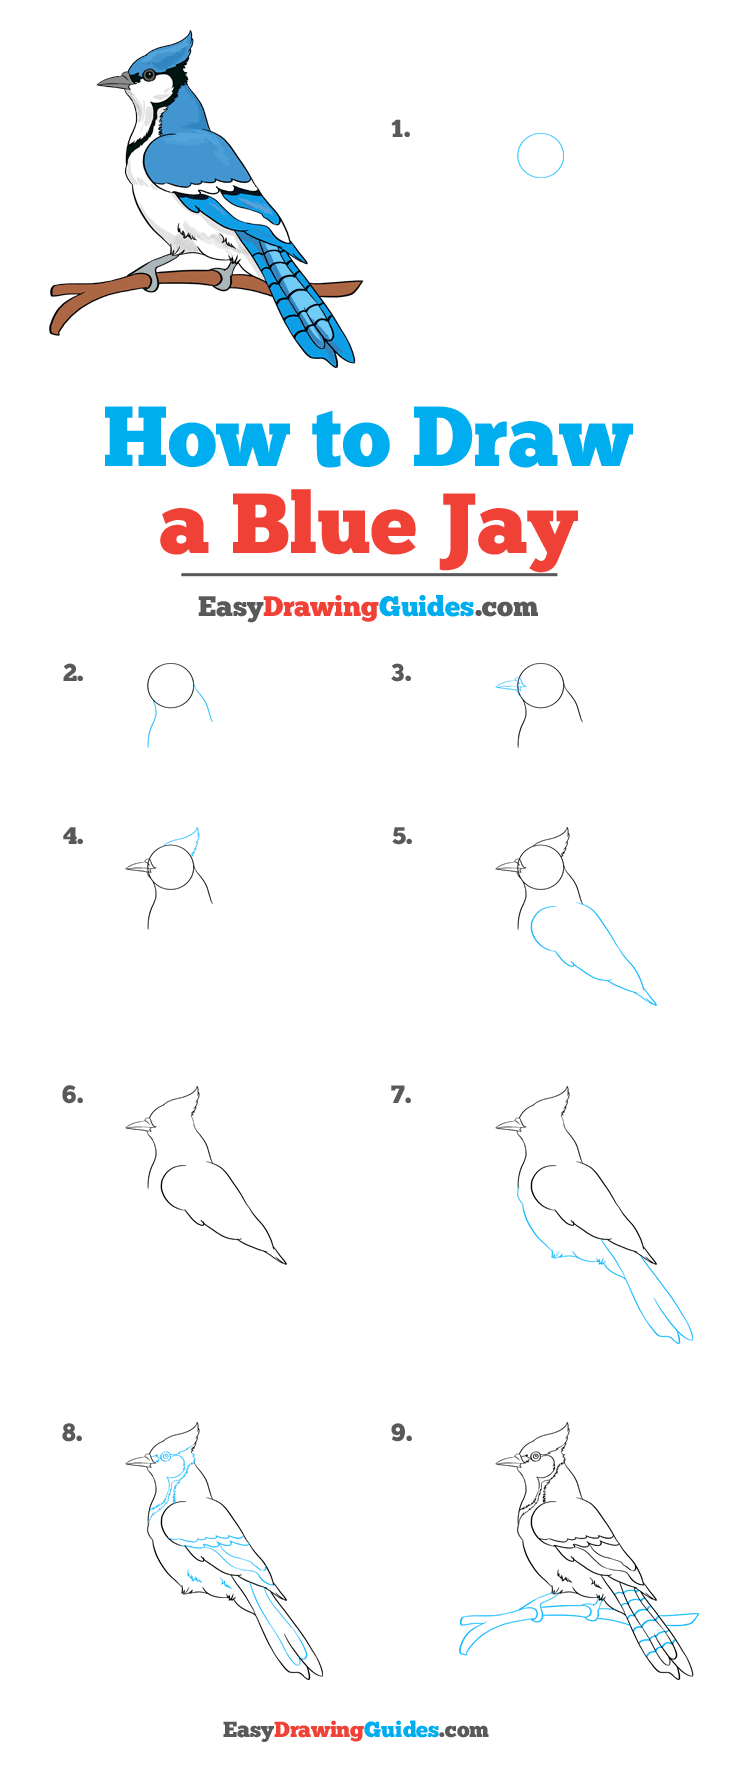 How to Draw a Blue Jay Step by Step Tutorial Image